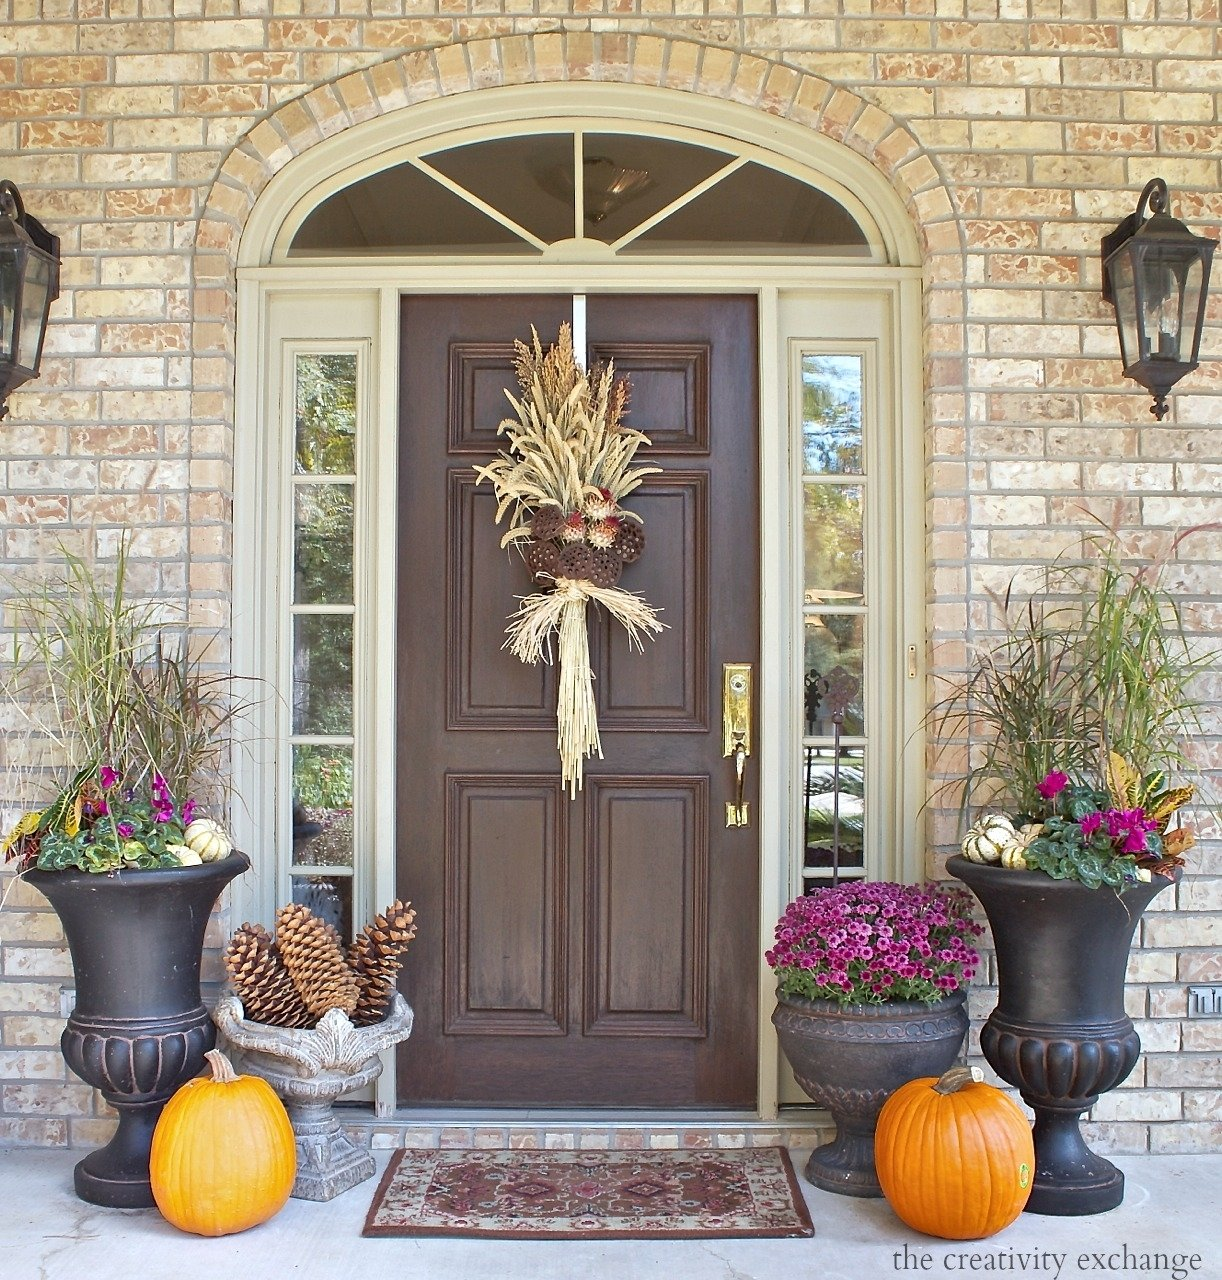 10 Lovely Front Porch Decorating Ideas For Fall fall front porch decorating ideas the creativity exchange front fall 3